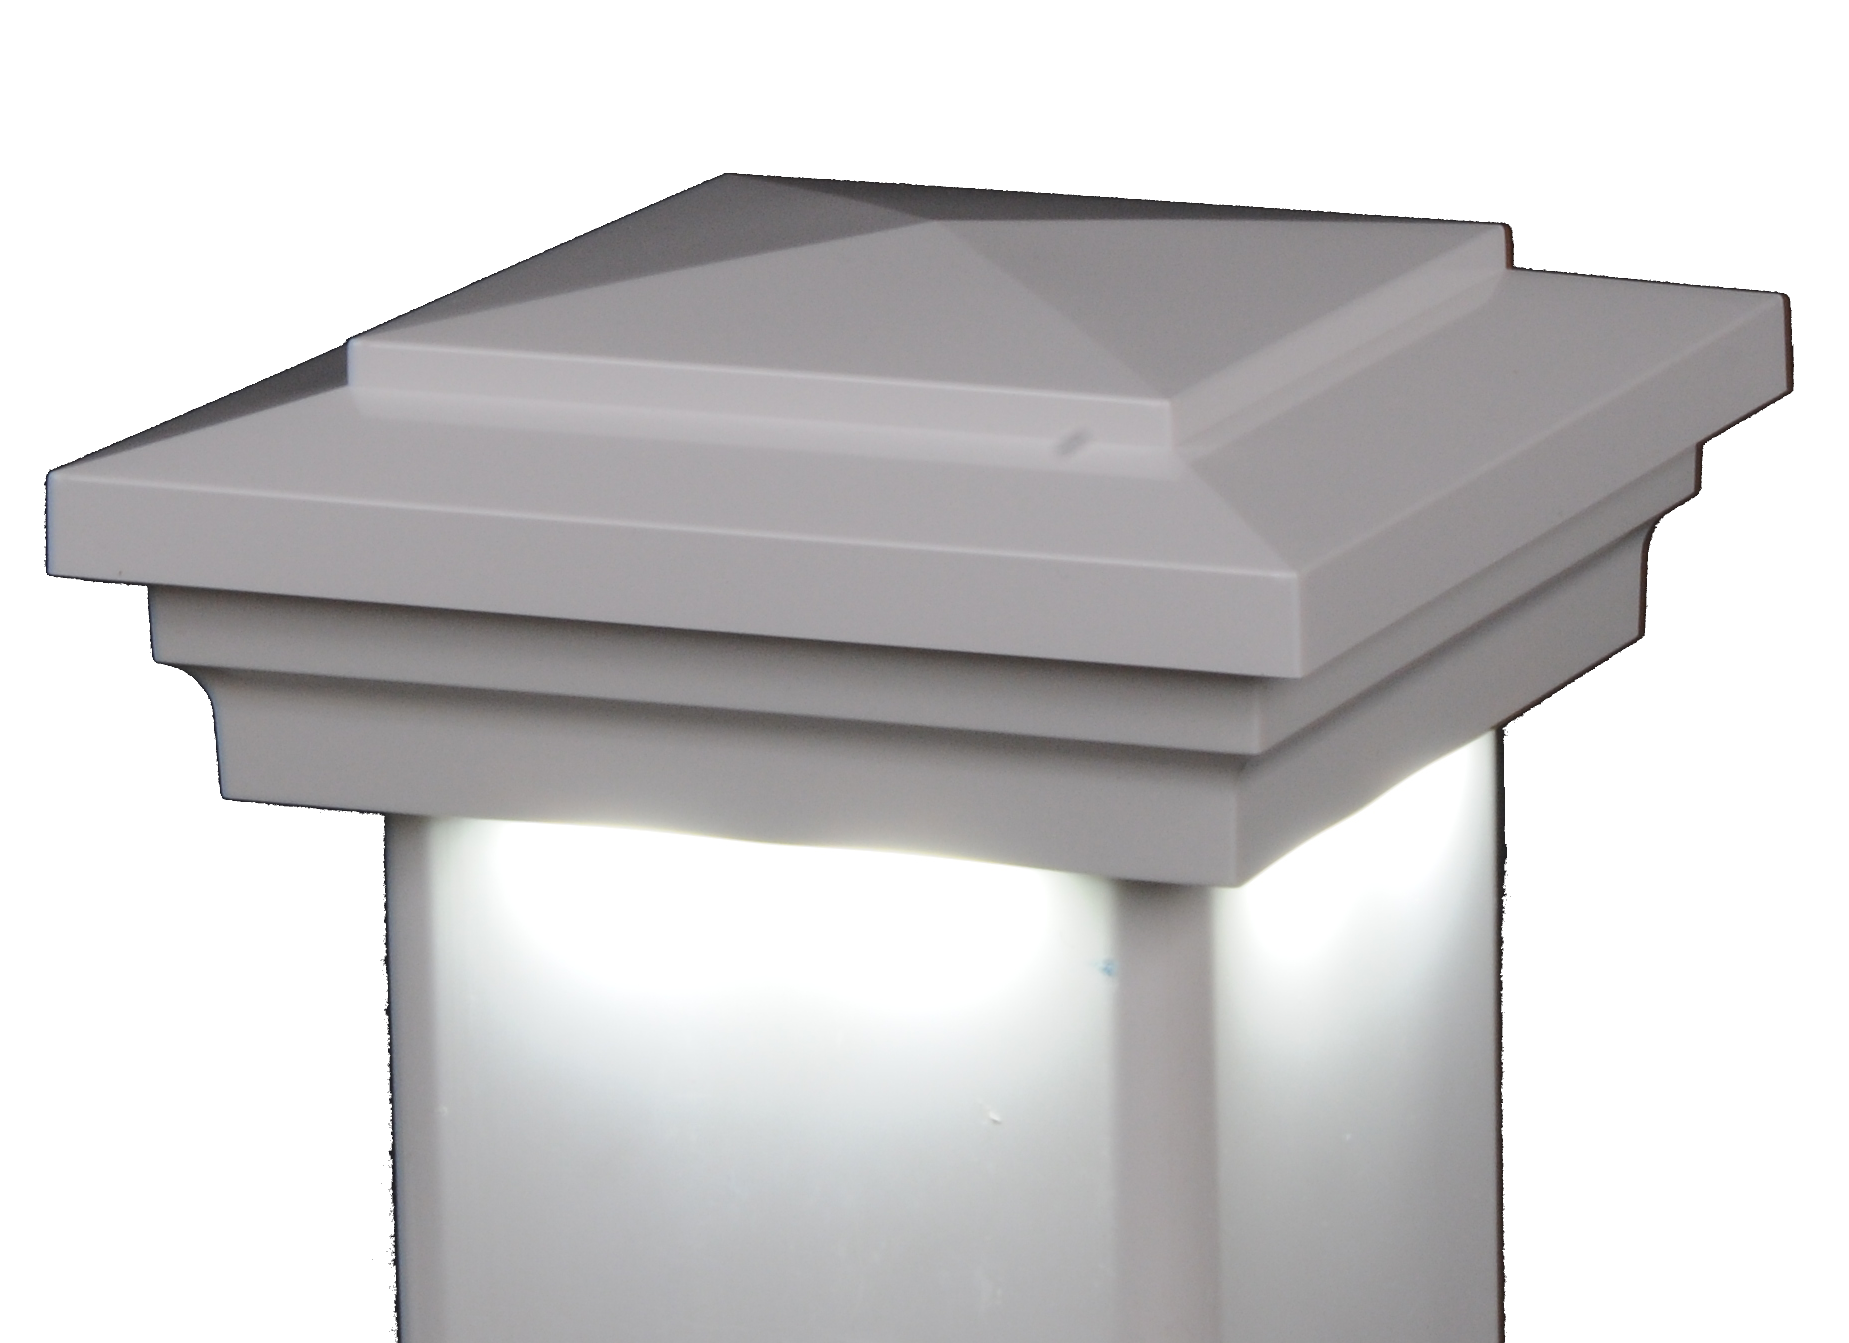 Cape May Downward low voltage hard wired vinyl post cap lighting light LMT solar